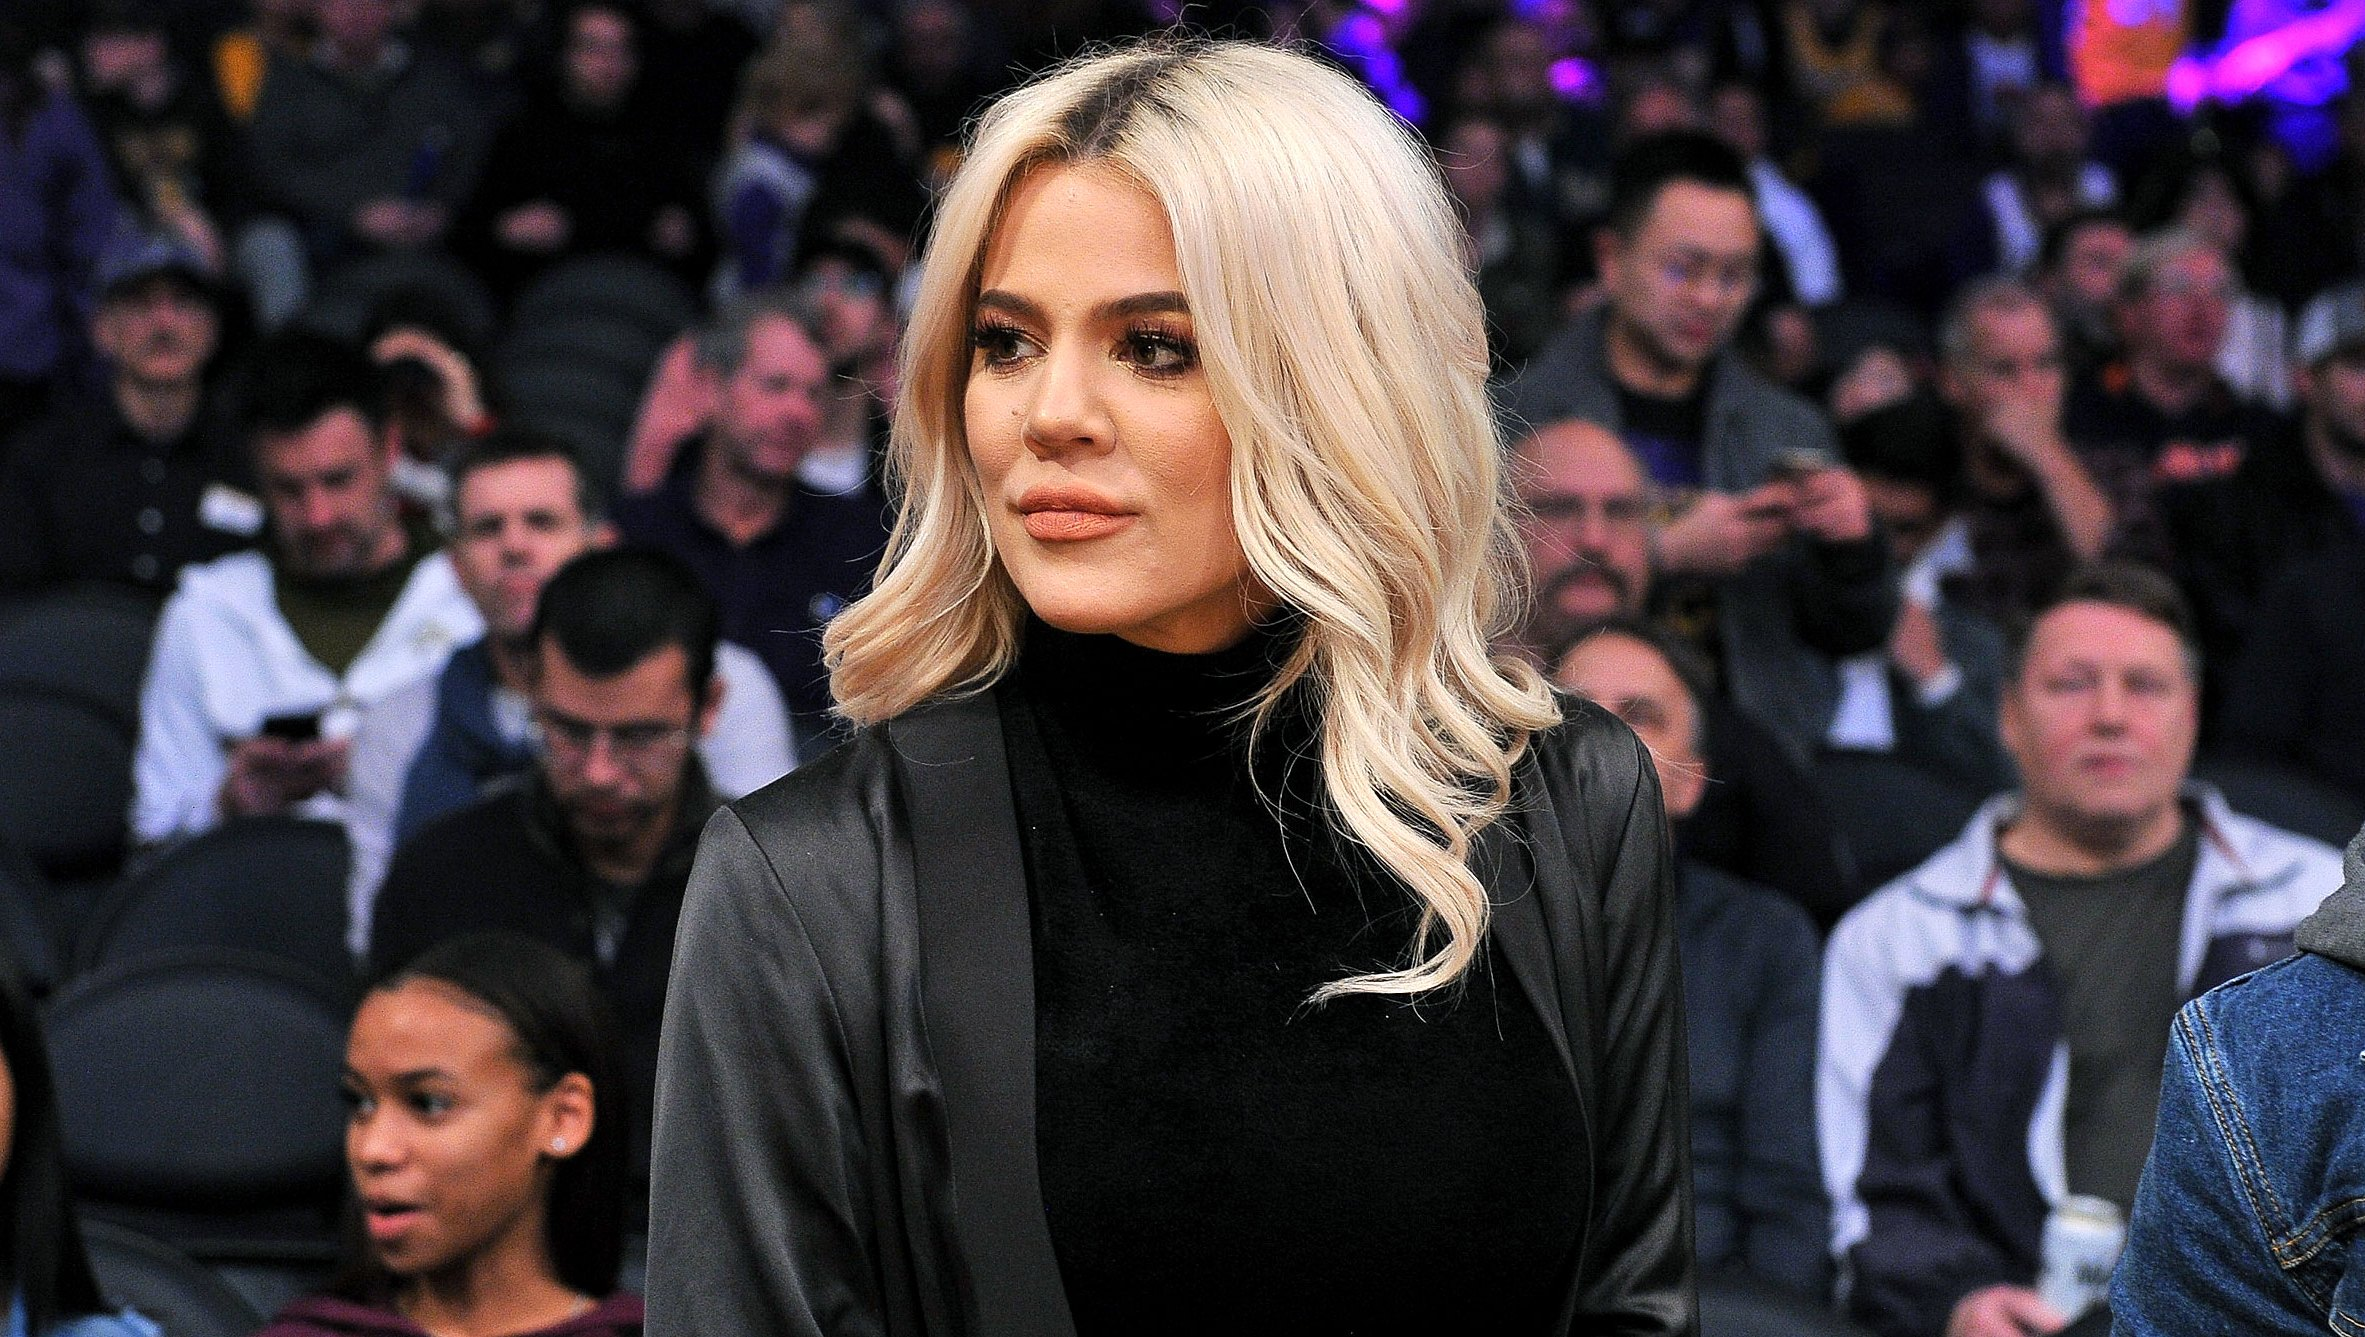 Khloe-Kardashian- You-Dont-Need-a-Man-to-Enjoy- Valentine-Day